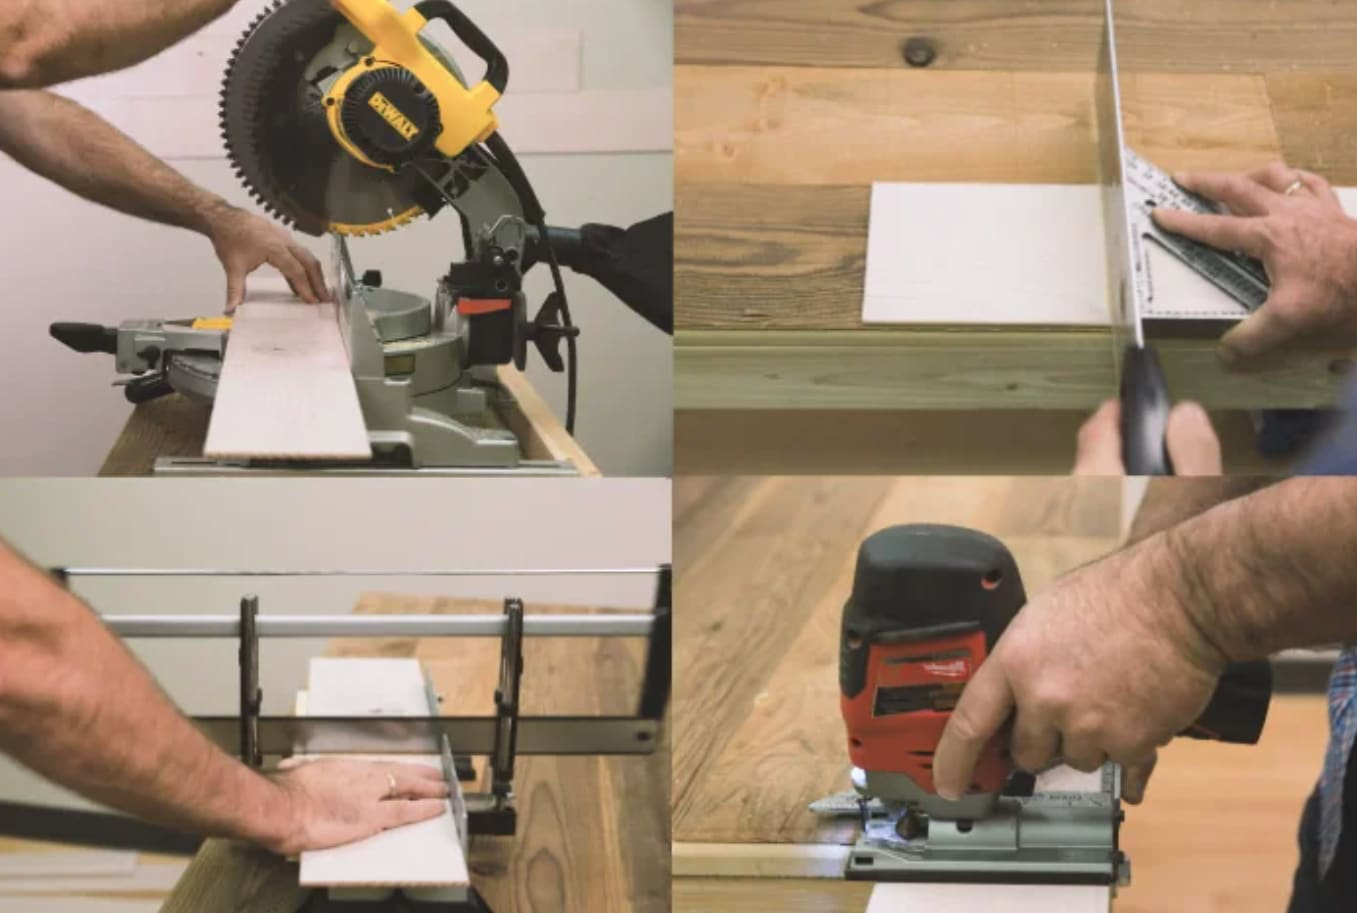 Group of images showing a electric miter saw cutting Stikwood planks.